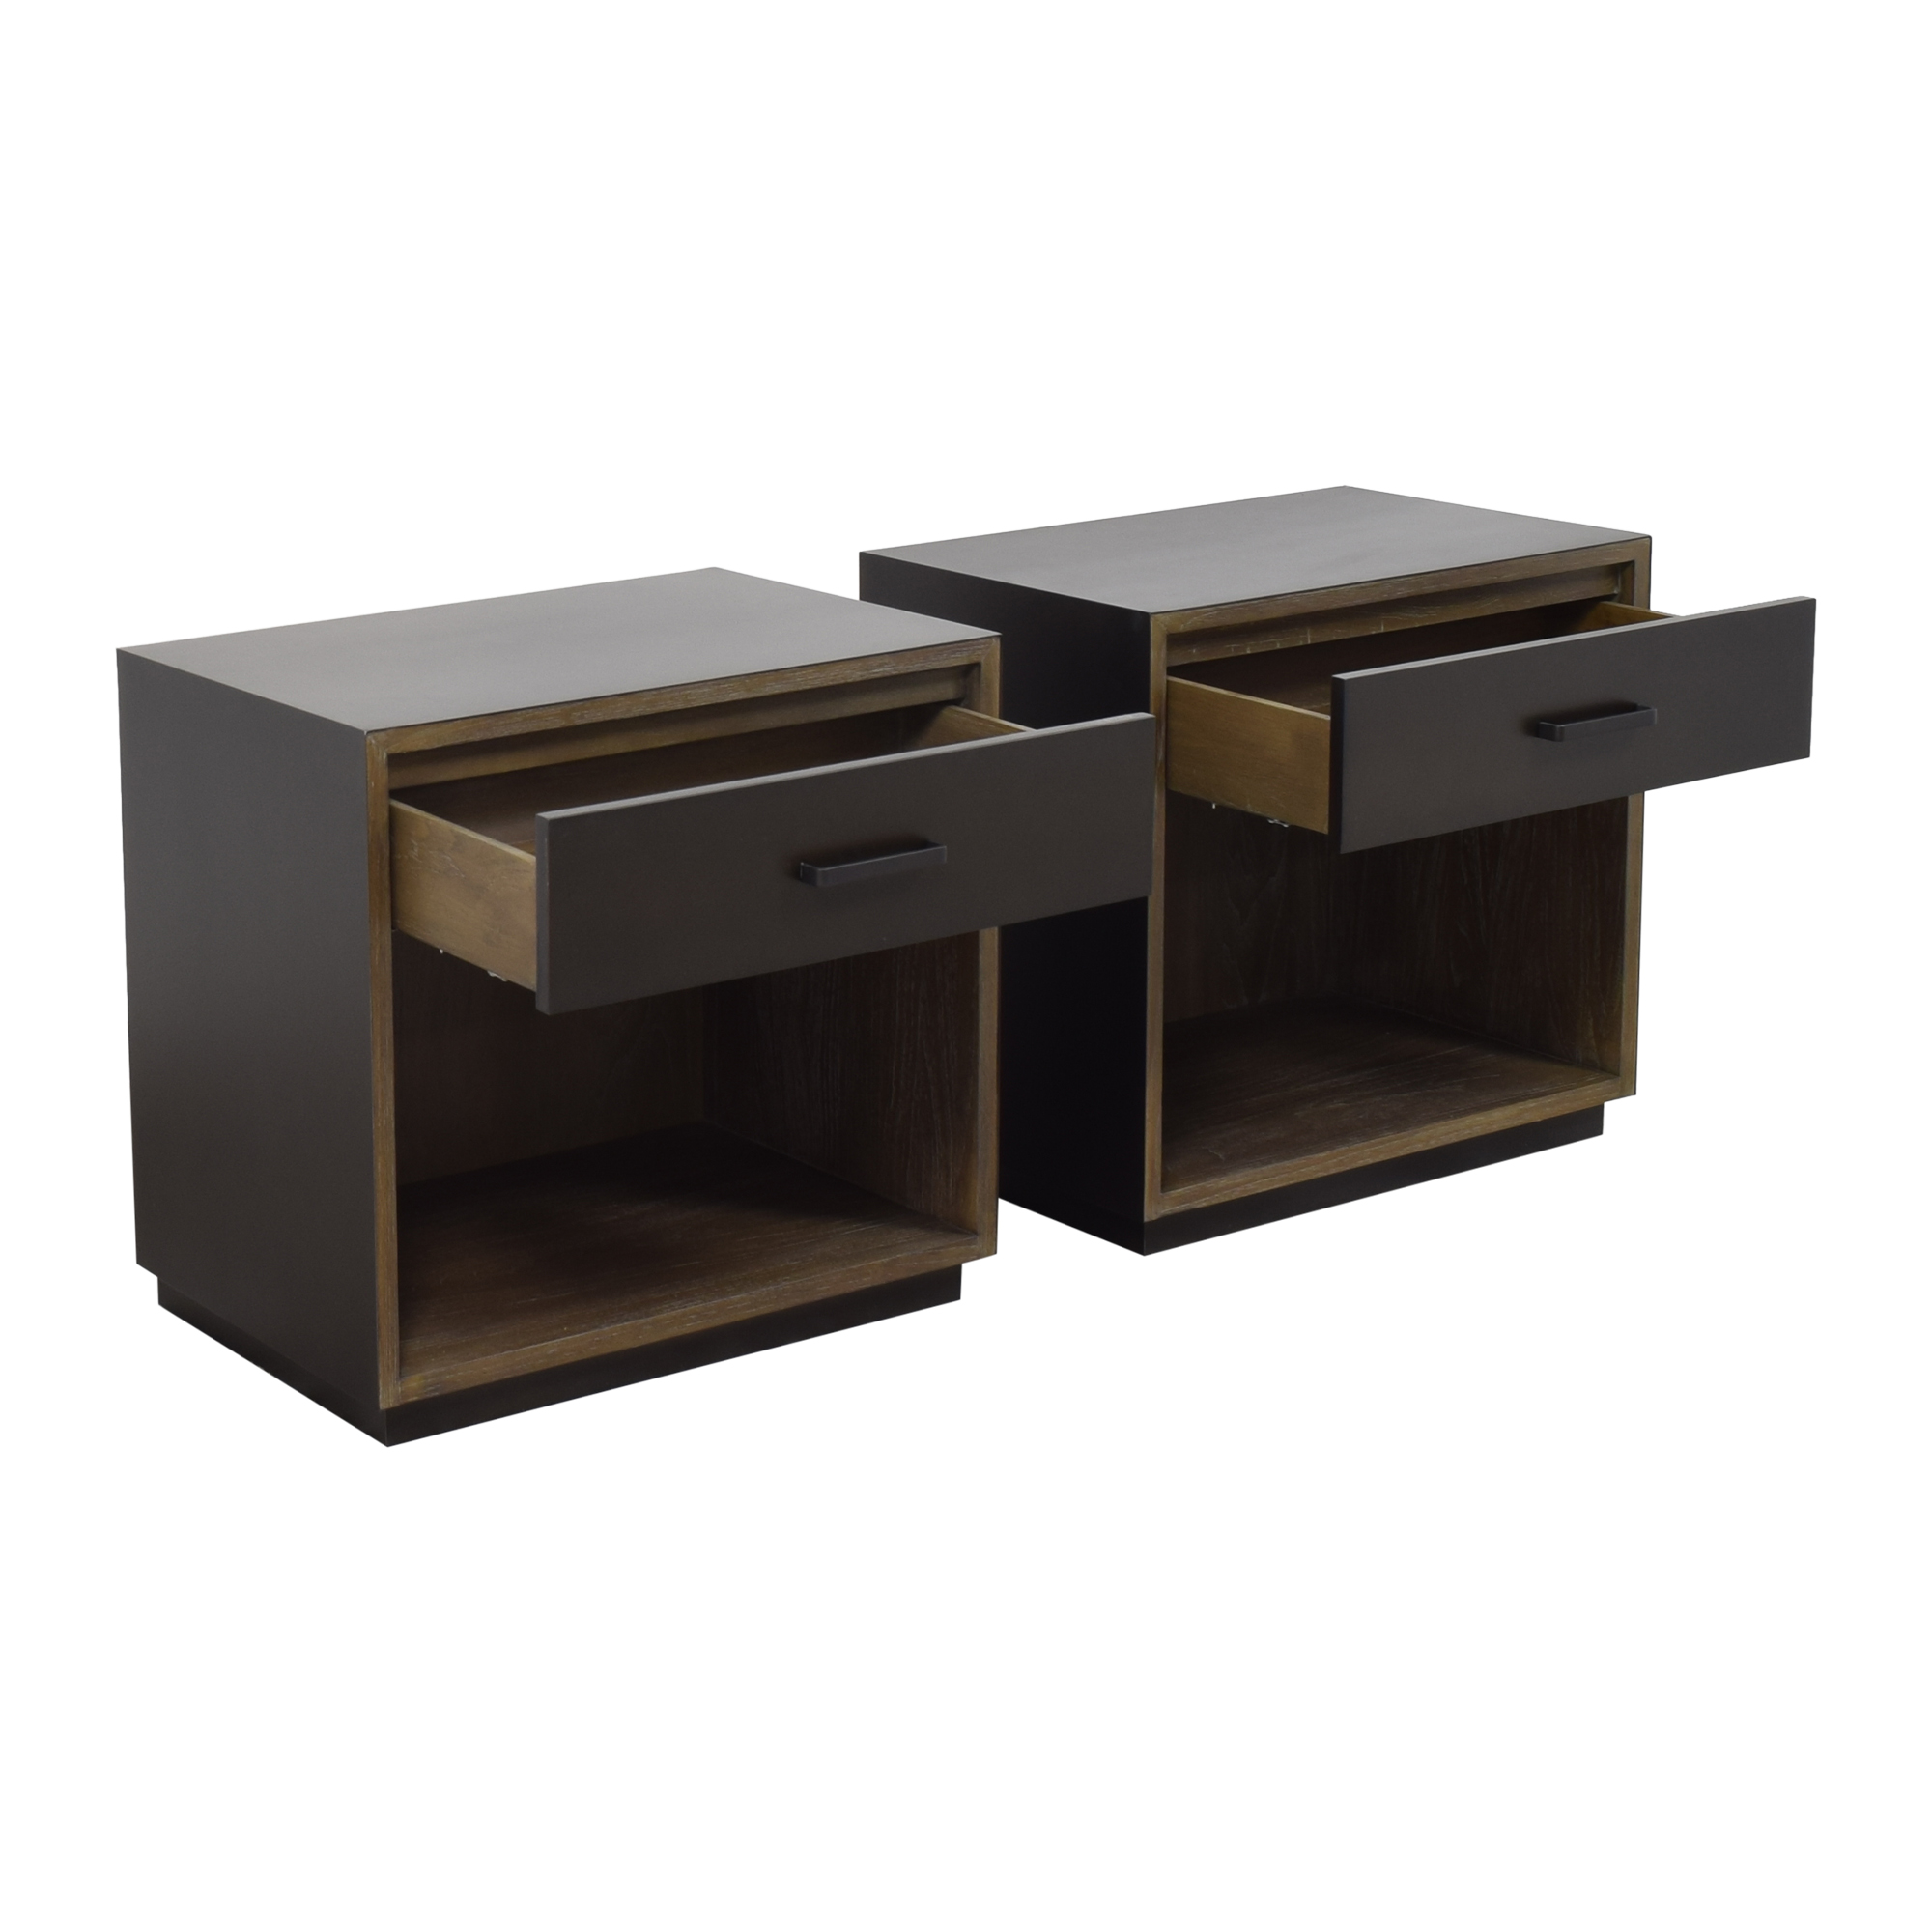 Brownstone Furniture Brownstone Furniture Baldwin Closed Nightstands pa